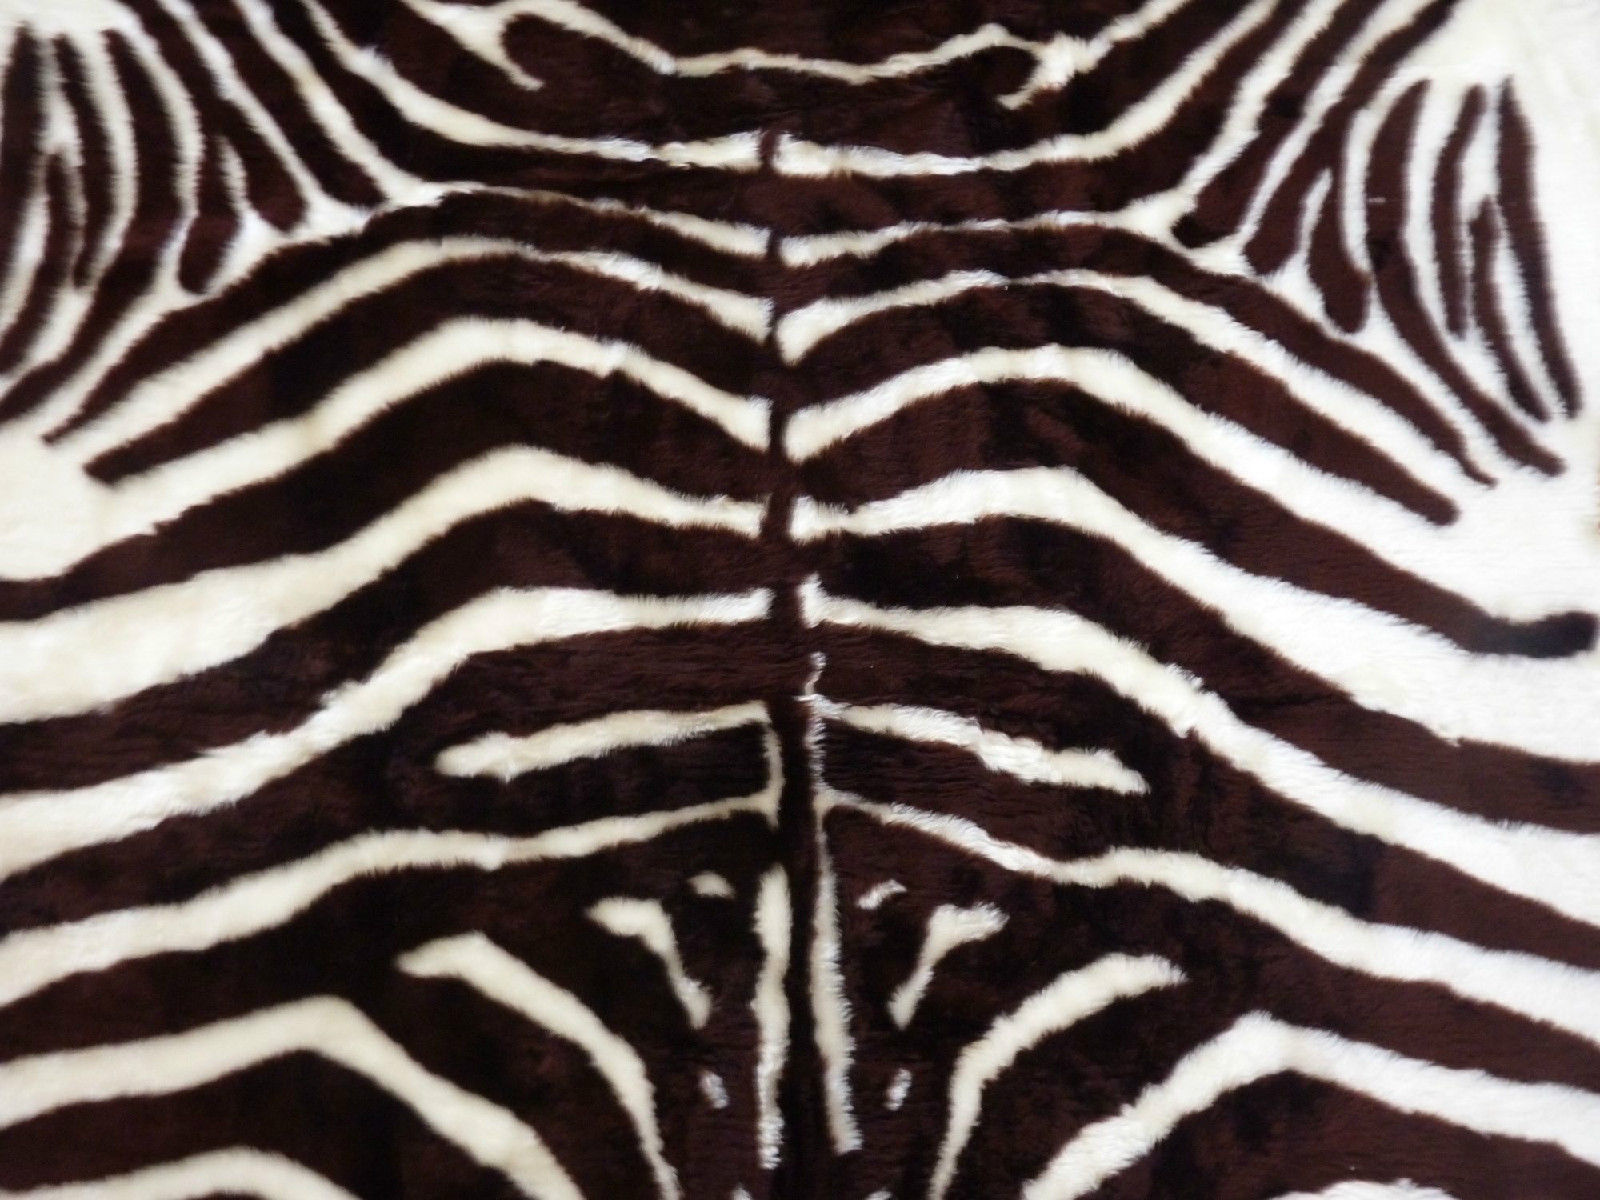 Faux fur zebra hide rug from france 3 x 5 brown white fake zebra skin rug leather fur - Faux animal skin rugs ...